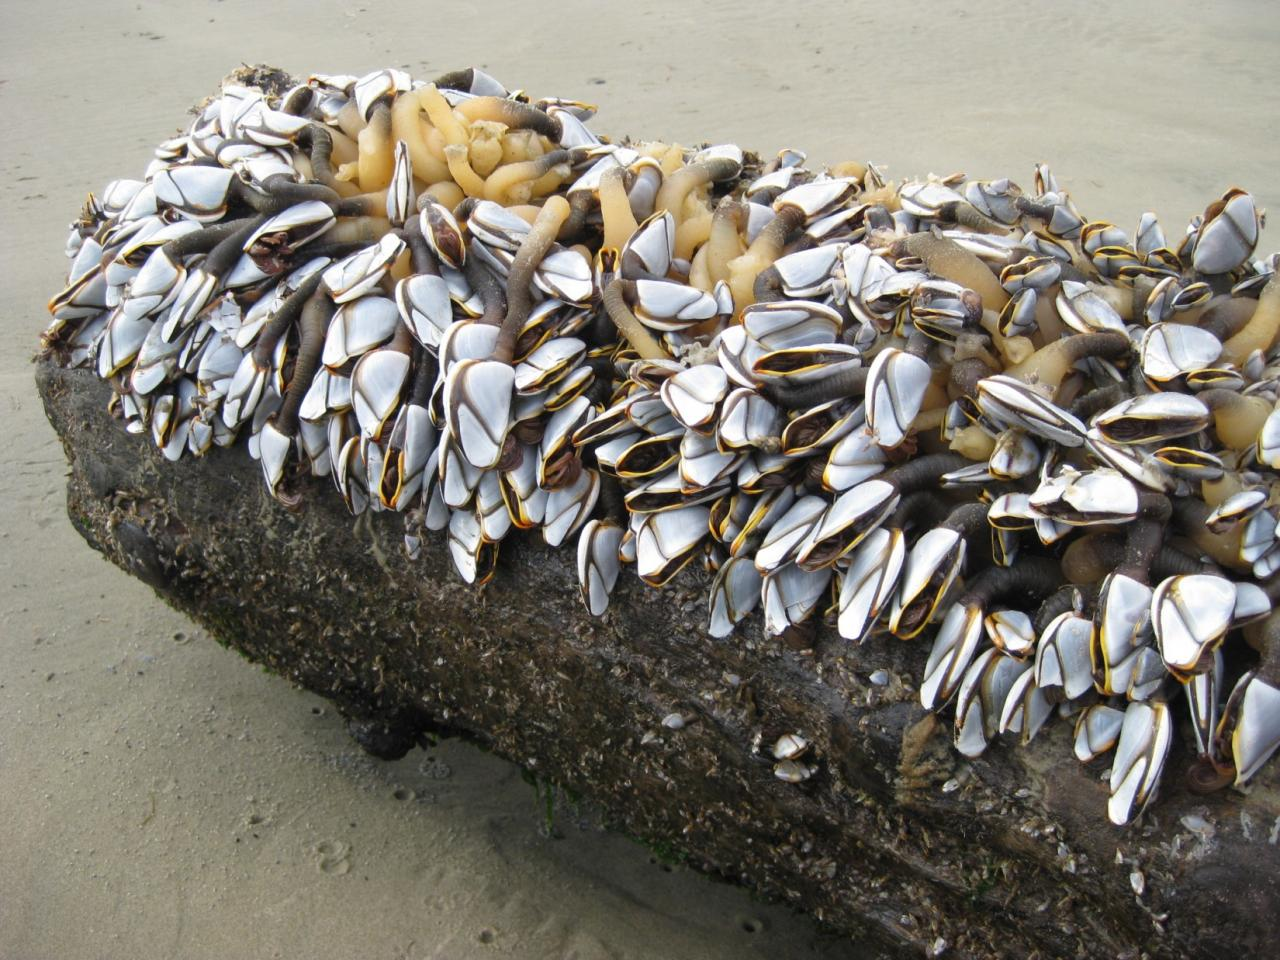 Dying Pelagic Goose Barnacles on a freshly washed-up log